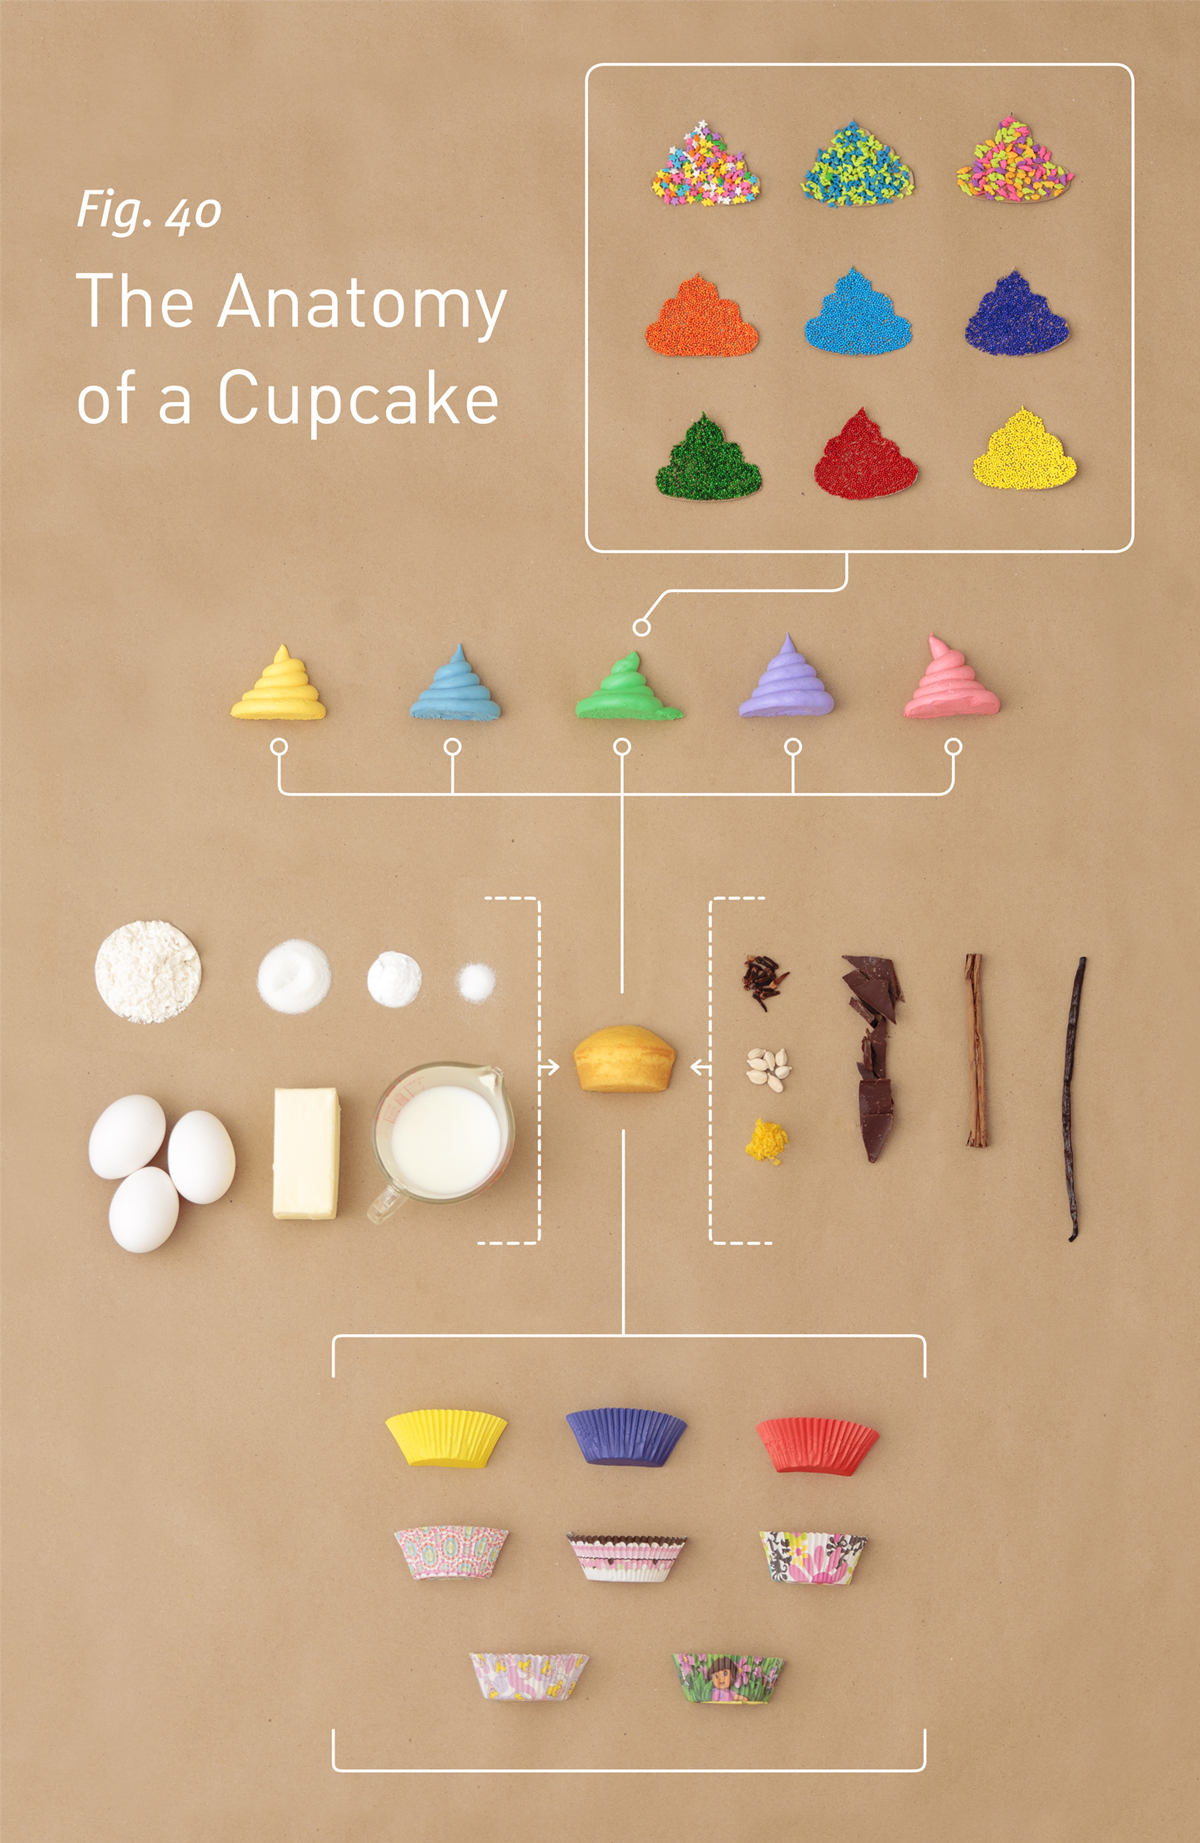 10+-Examples-of-Minimalist-Design-to-Inspire-Your-Own-Creations-Examples-of-minimalist-infographics-Anatomy-of-a-cupcake